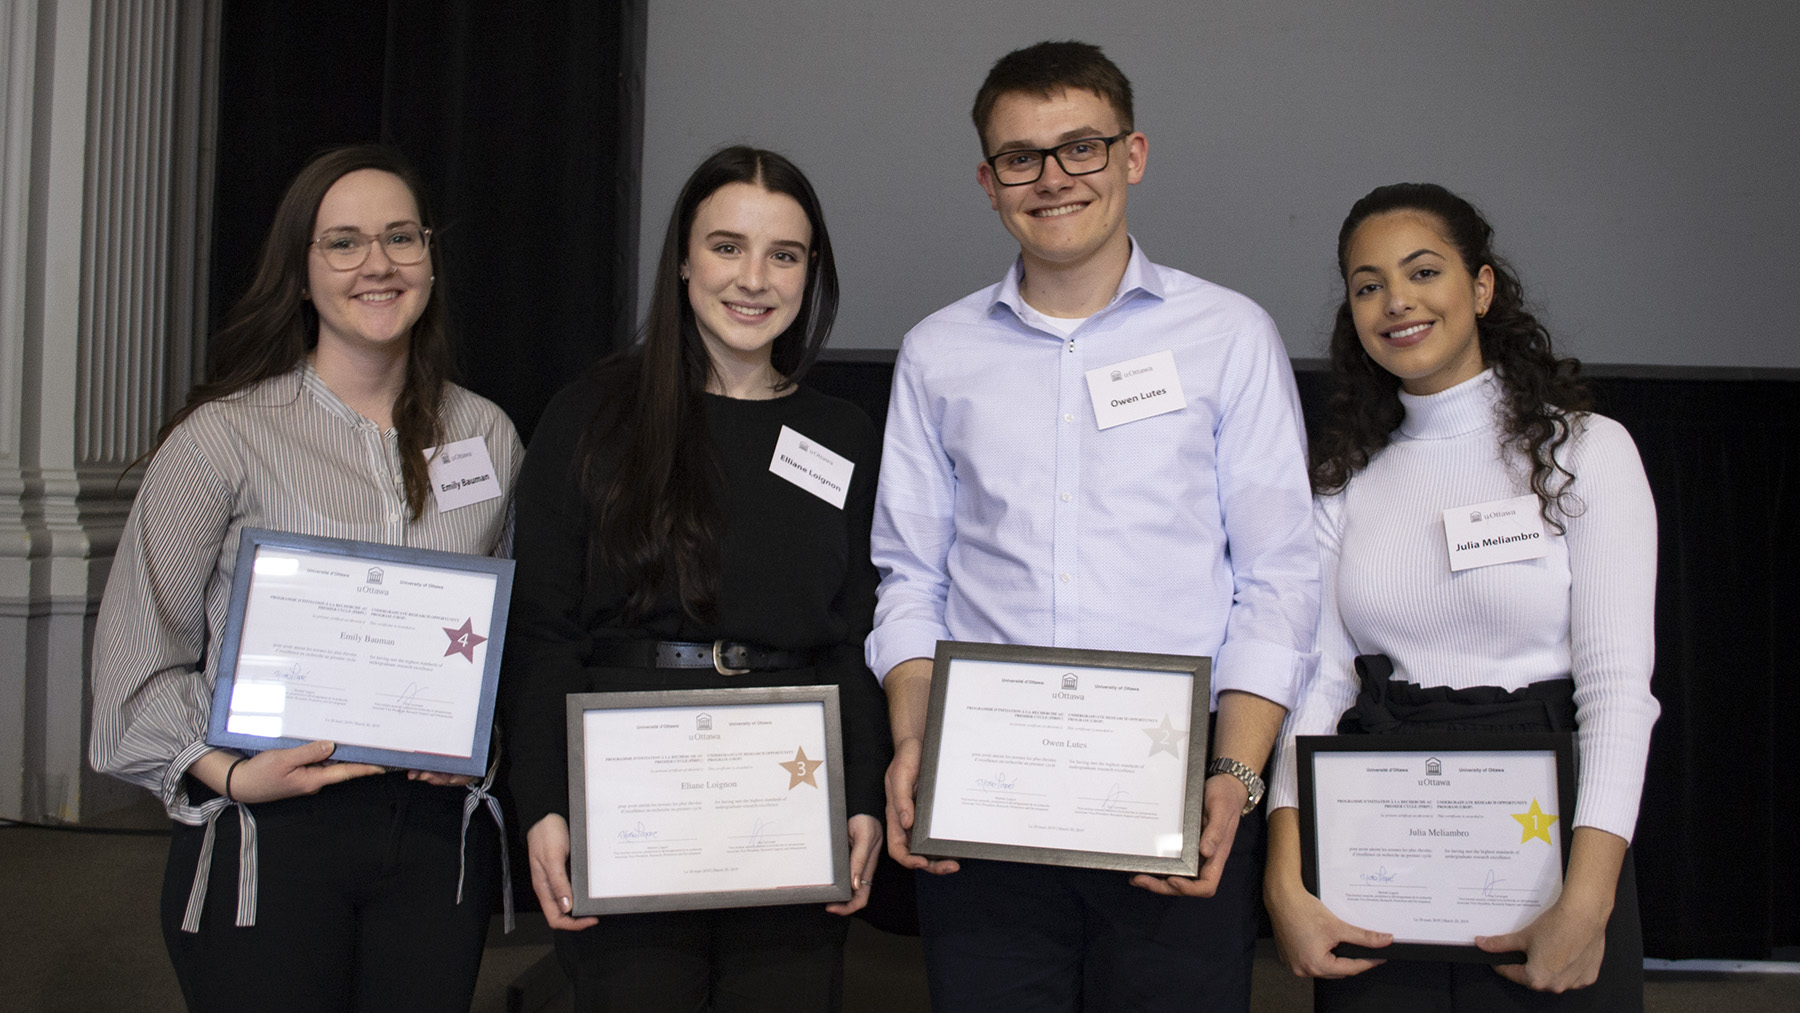 Four students standing side by side with a certificate in their hands